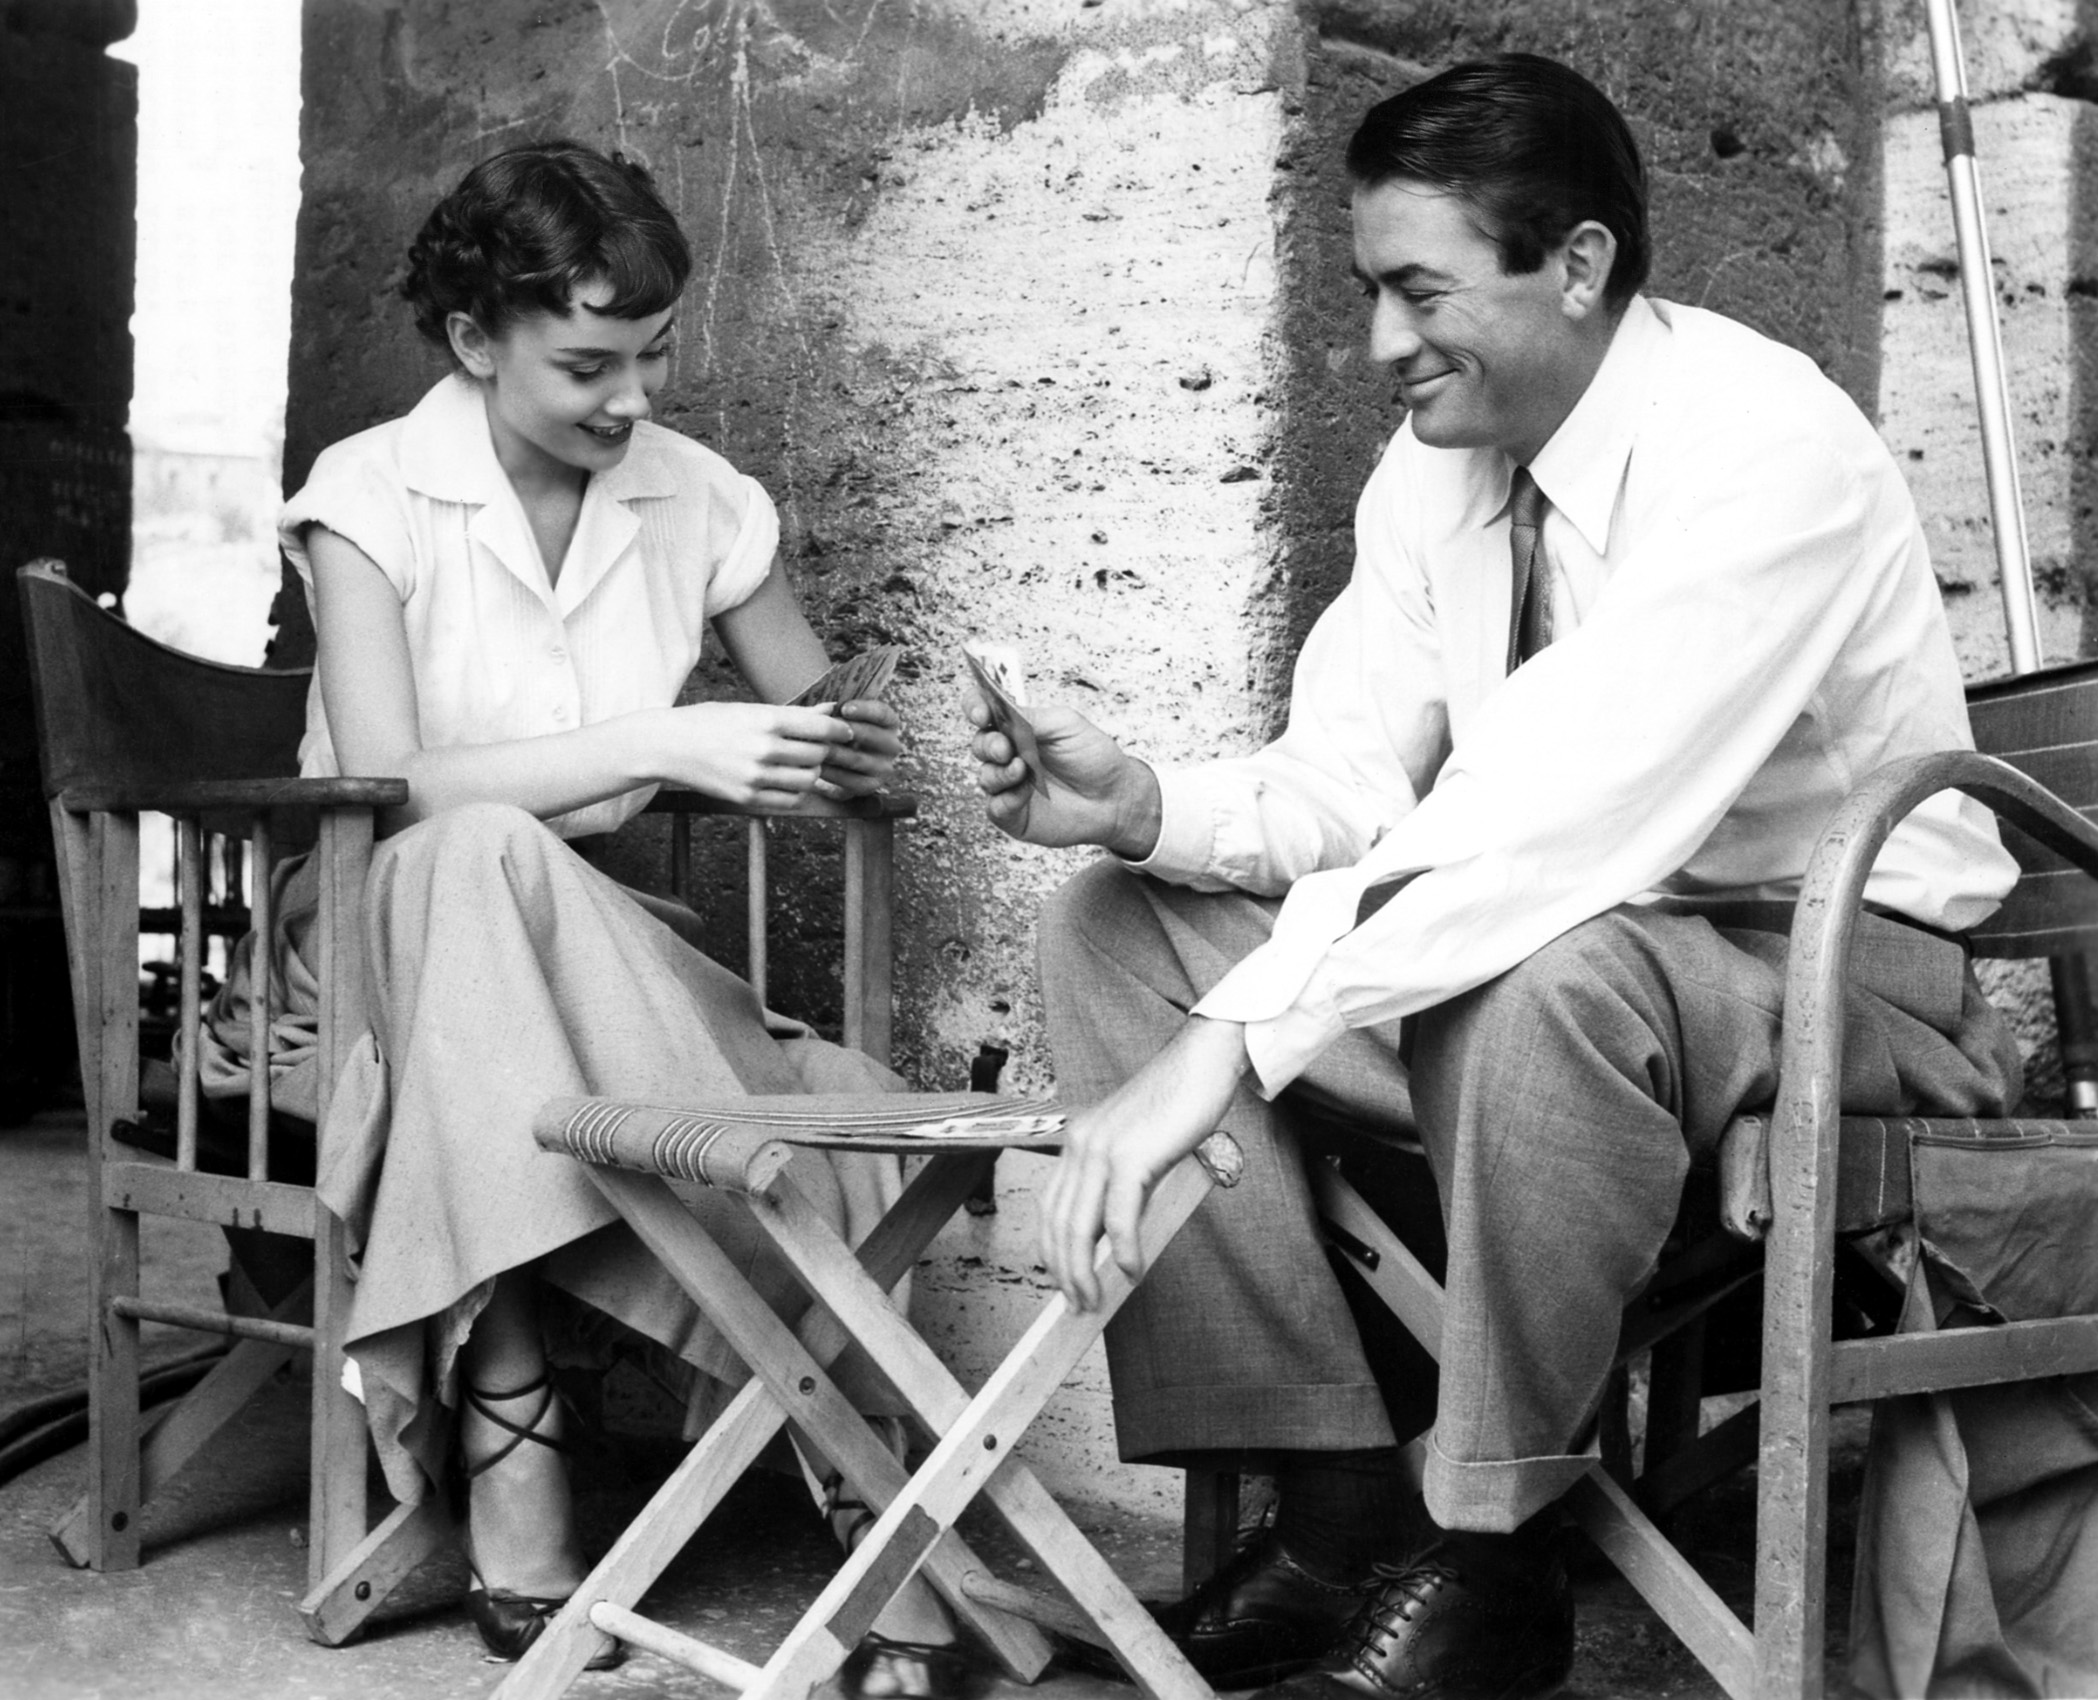 Audrey Hepburn and Gregory Peck Playing Cards 1953